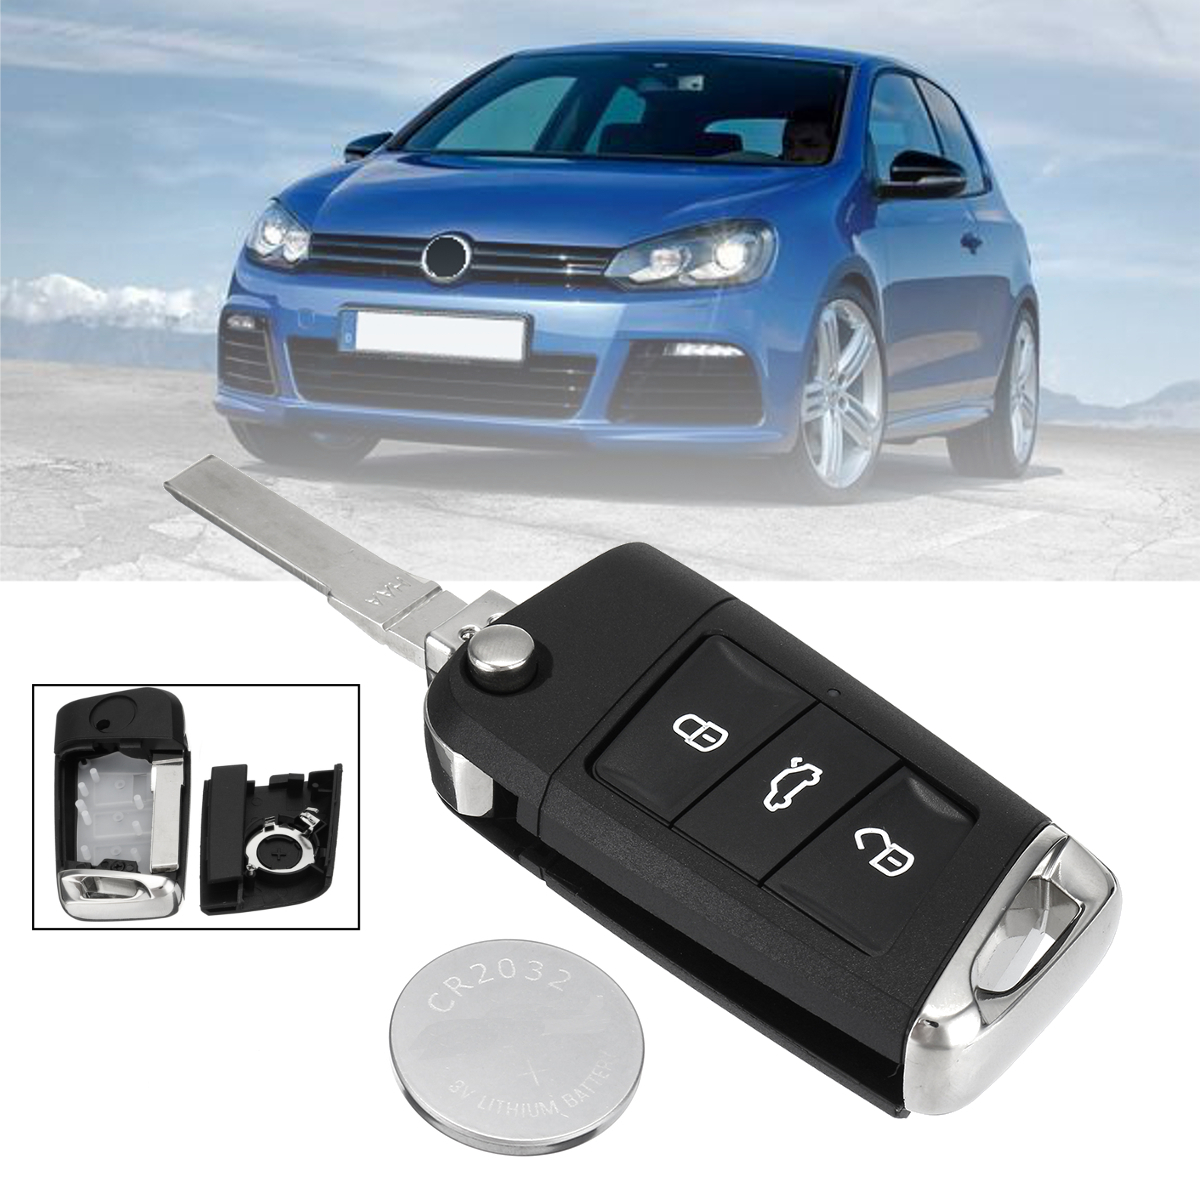 3 Buttons Flip Remote Key Fob Case Shell Battery For VW Golf MK7 2002-2006